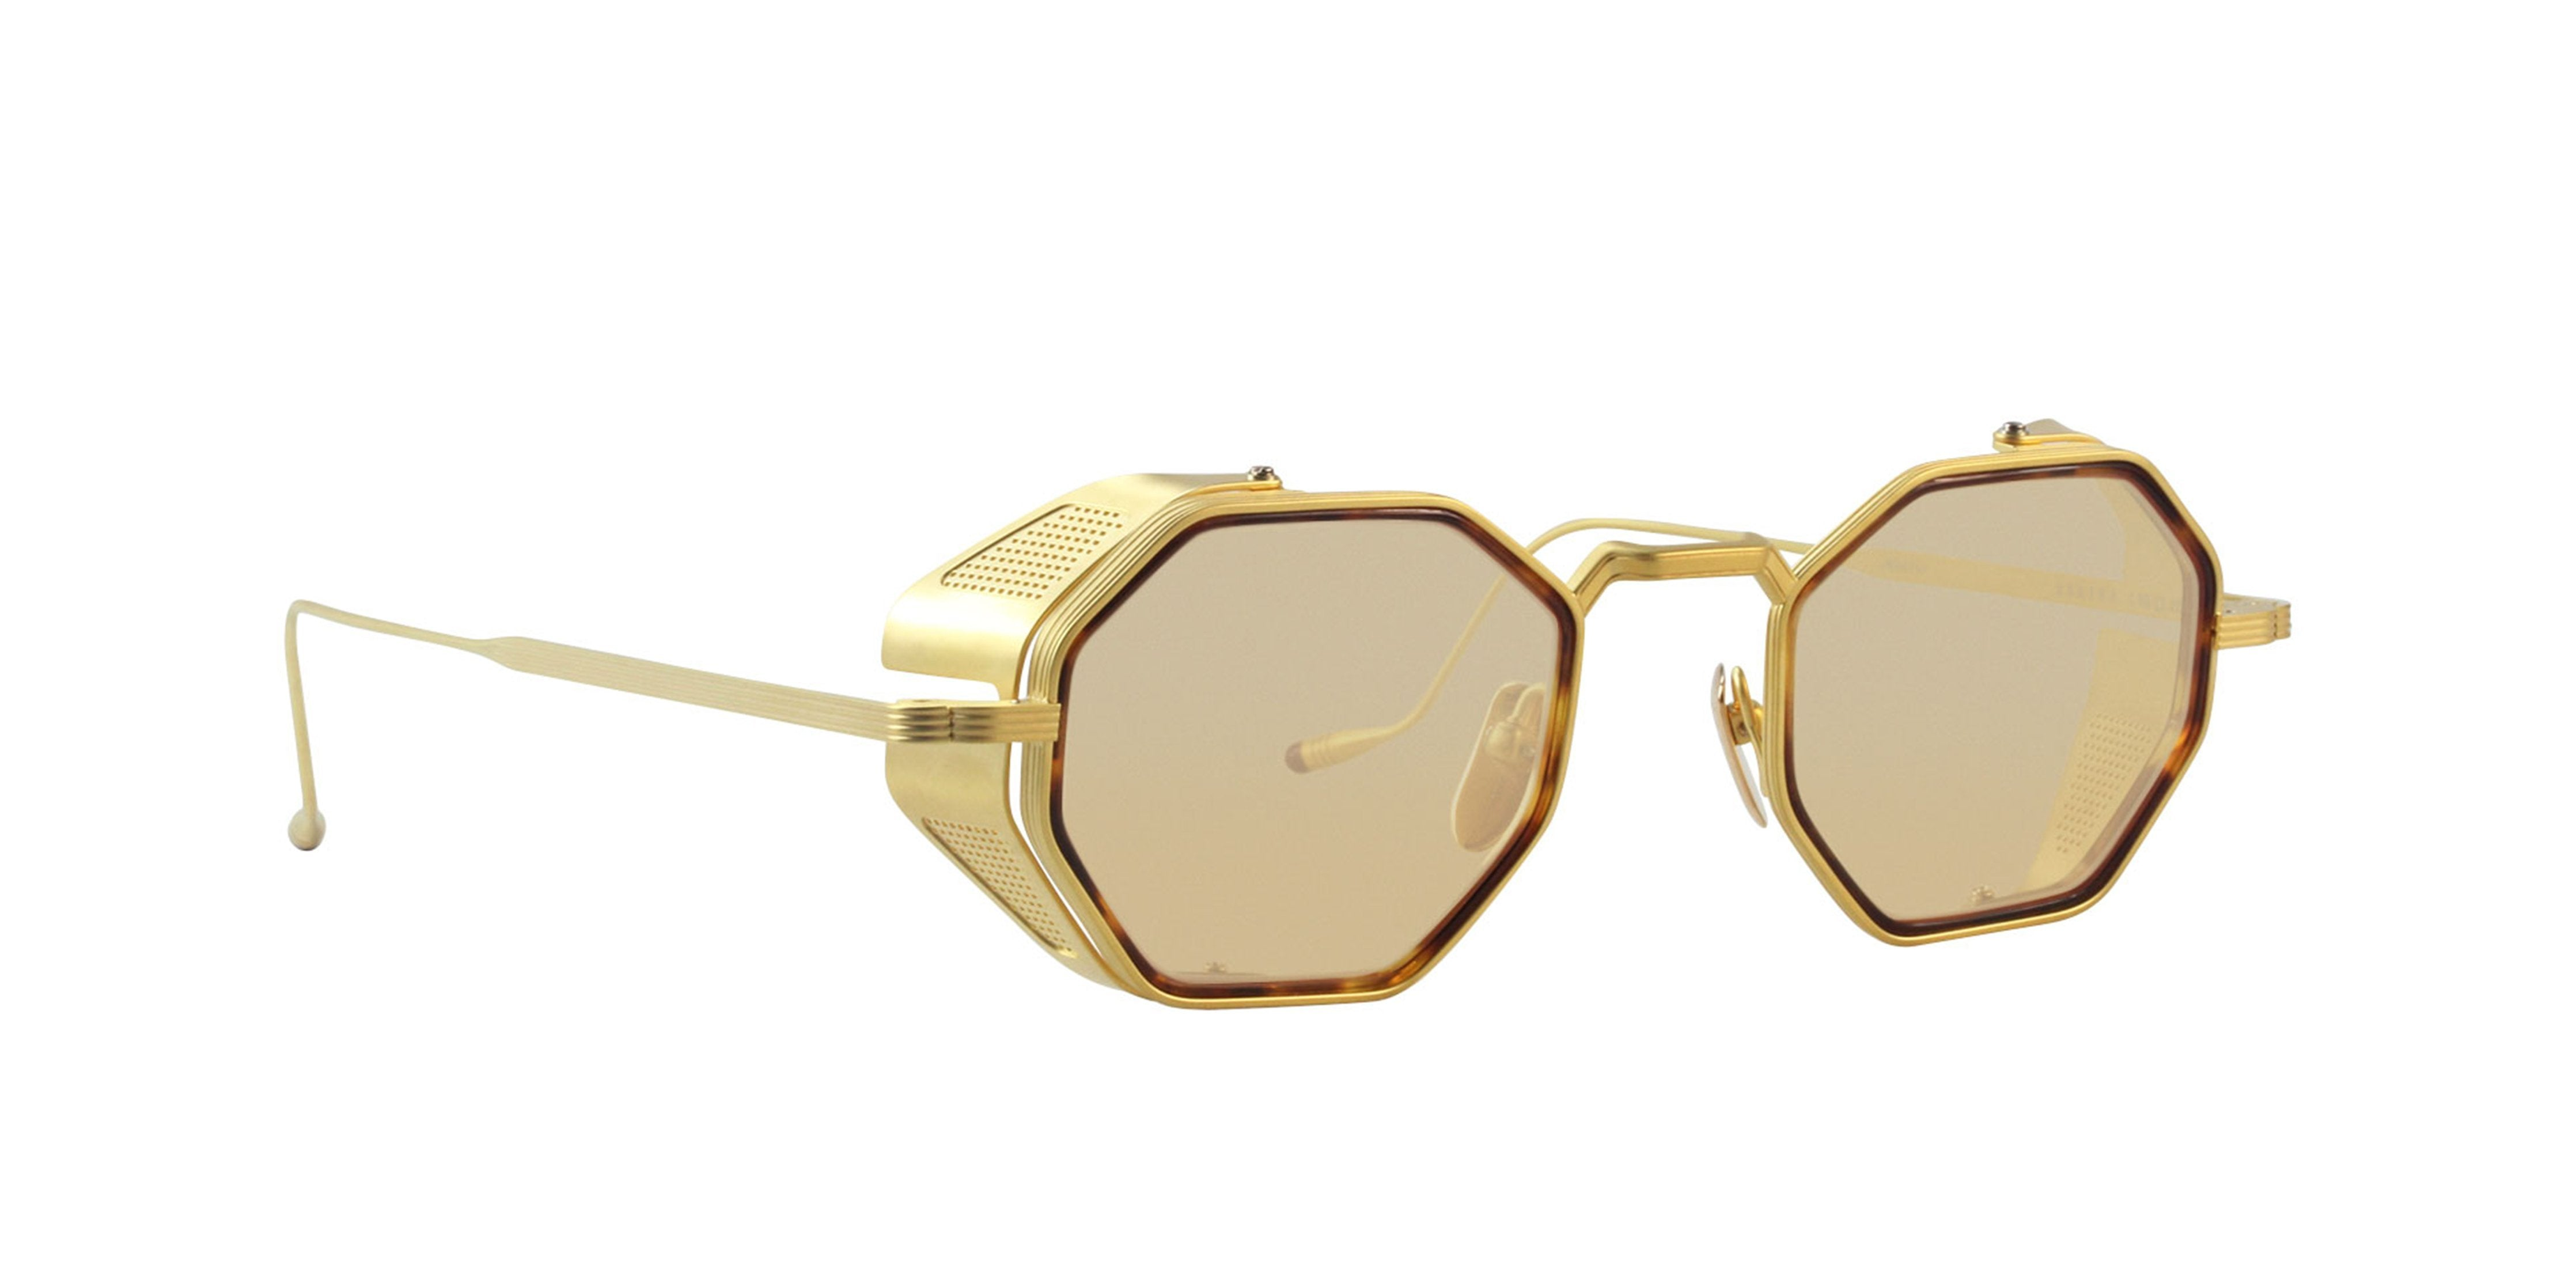 Jacques Marie Mage - Quatro Gold/Yellow Oval Unisex Sunglasses - 48mm-Sunglasses-Designer Eyes